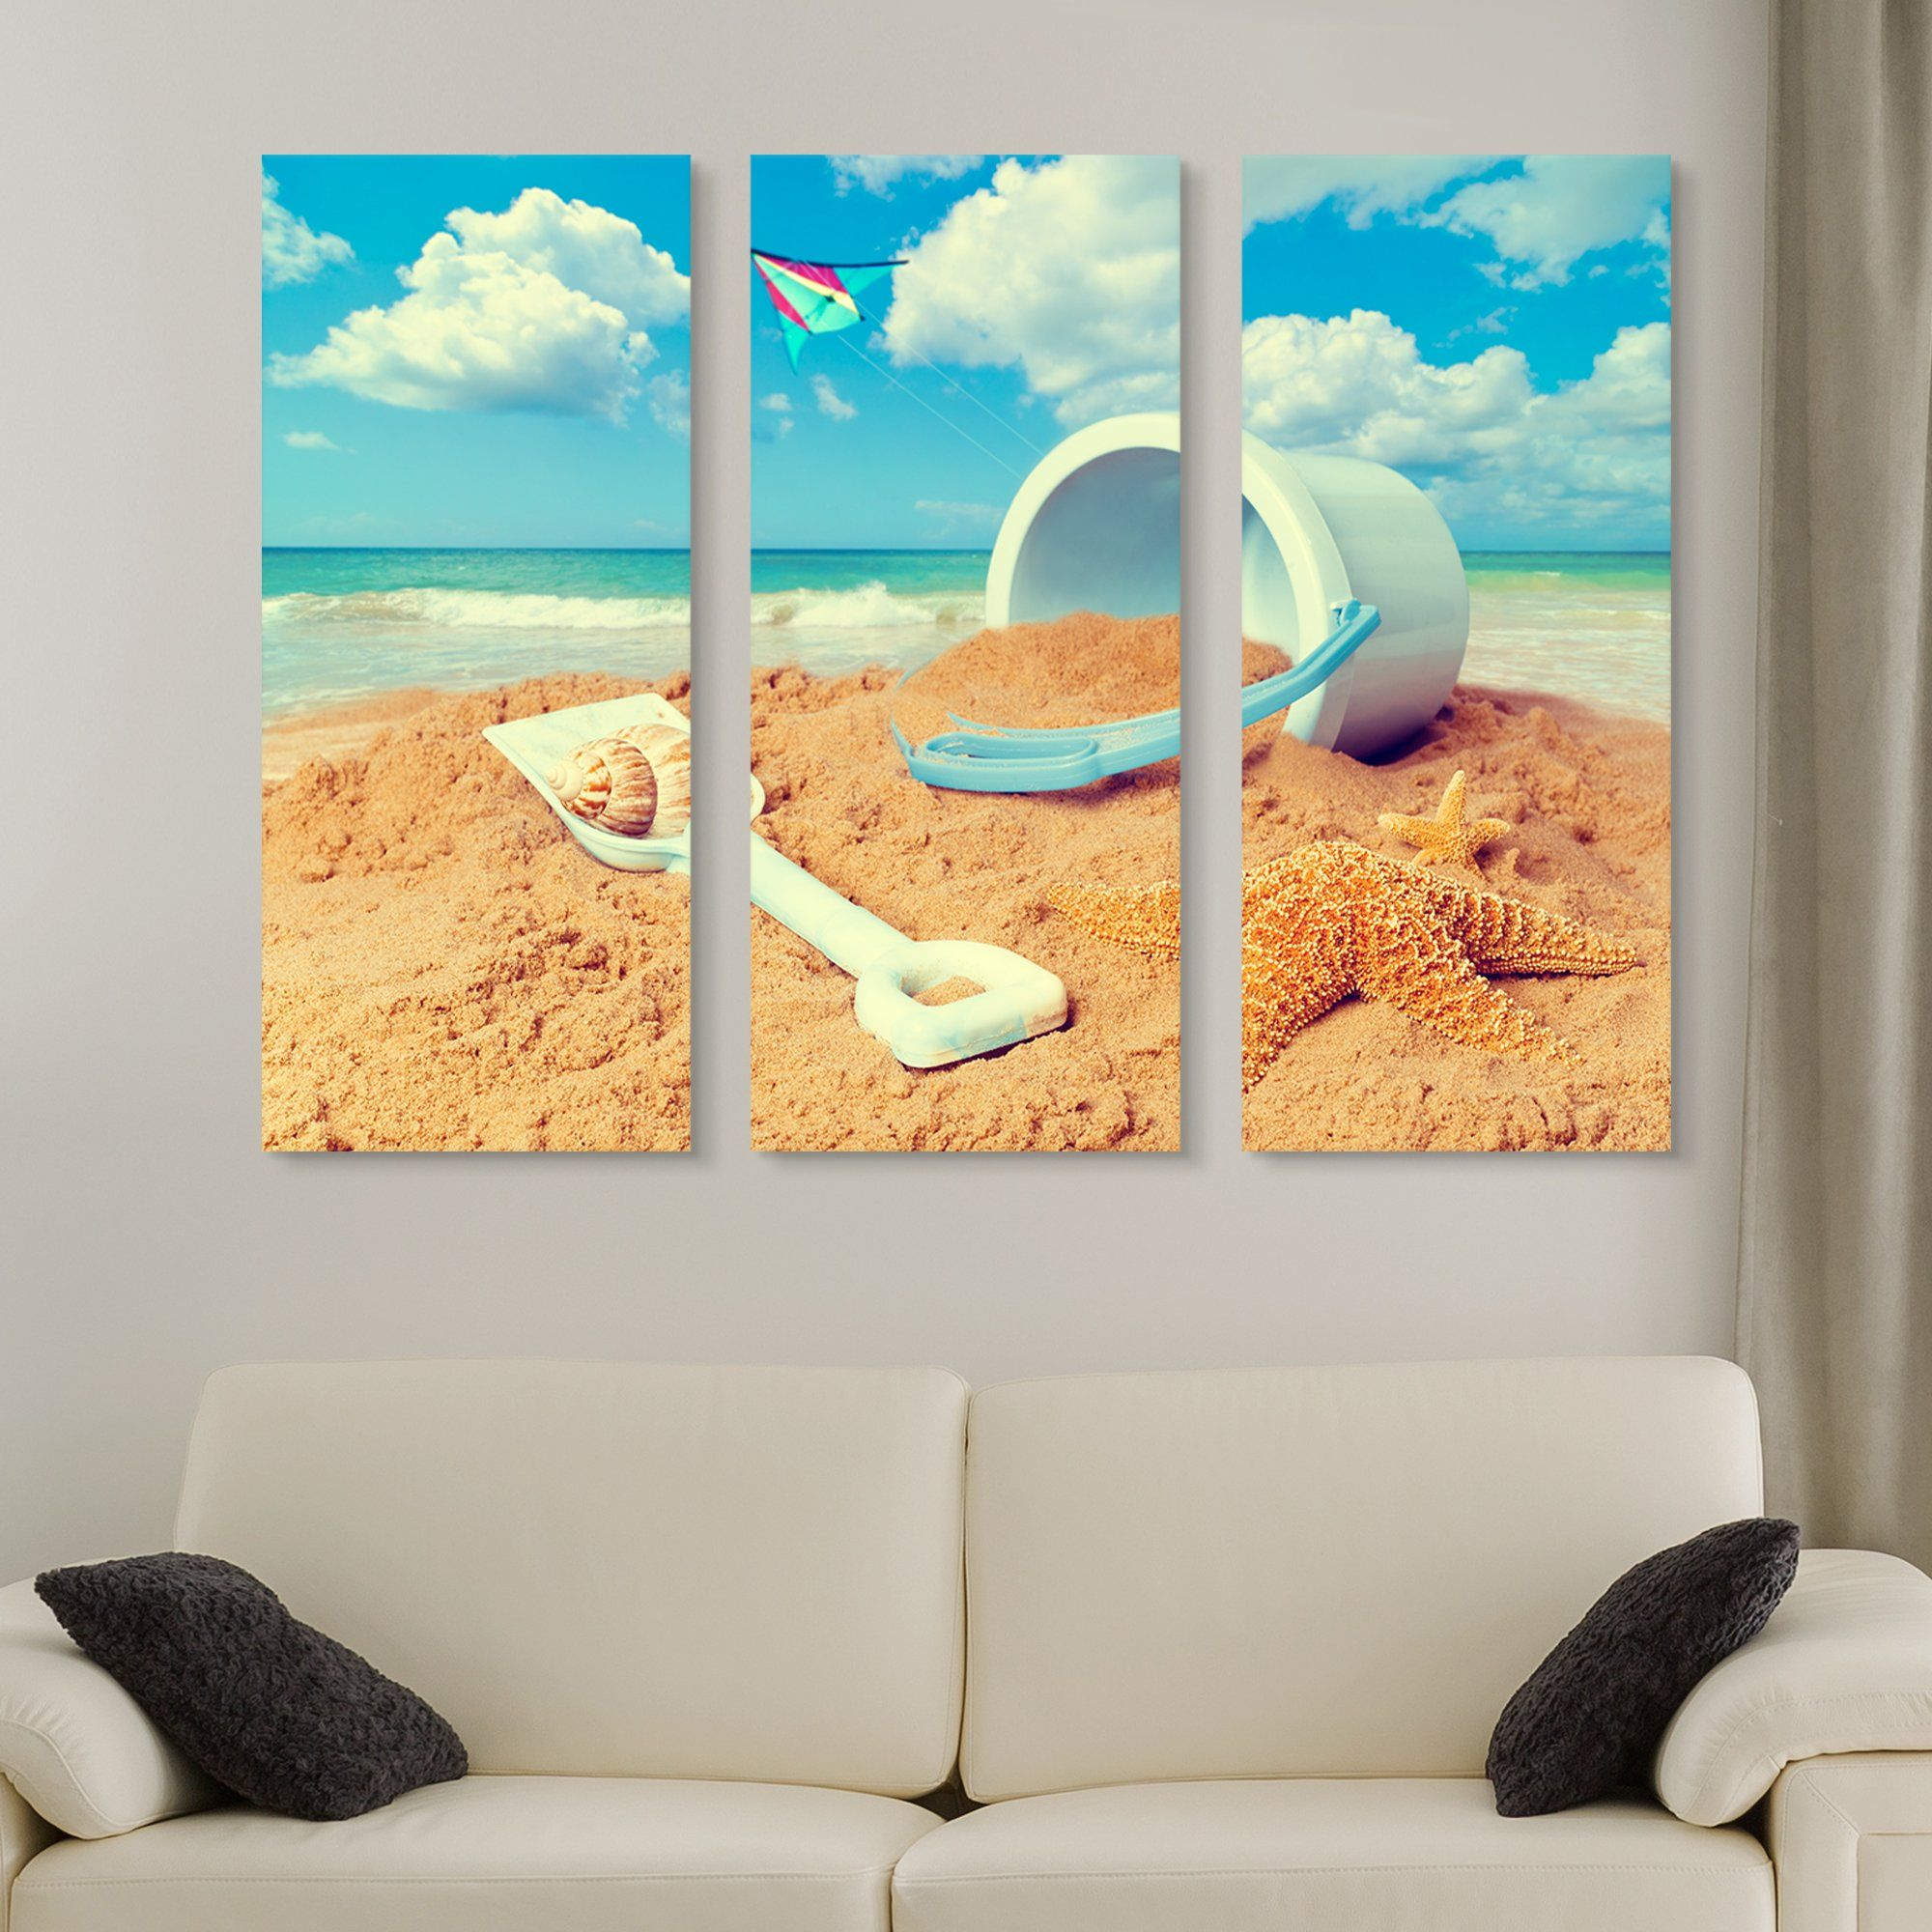 3 piece Playing with Beach Sand wall art